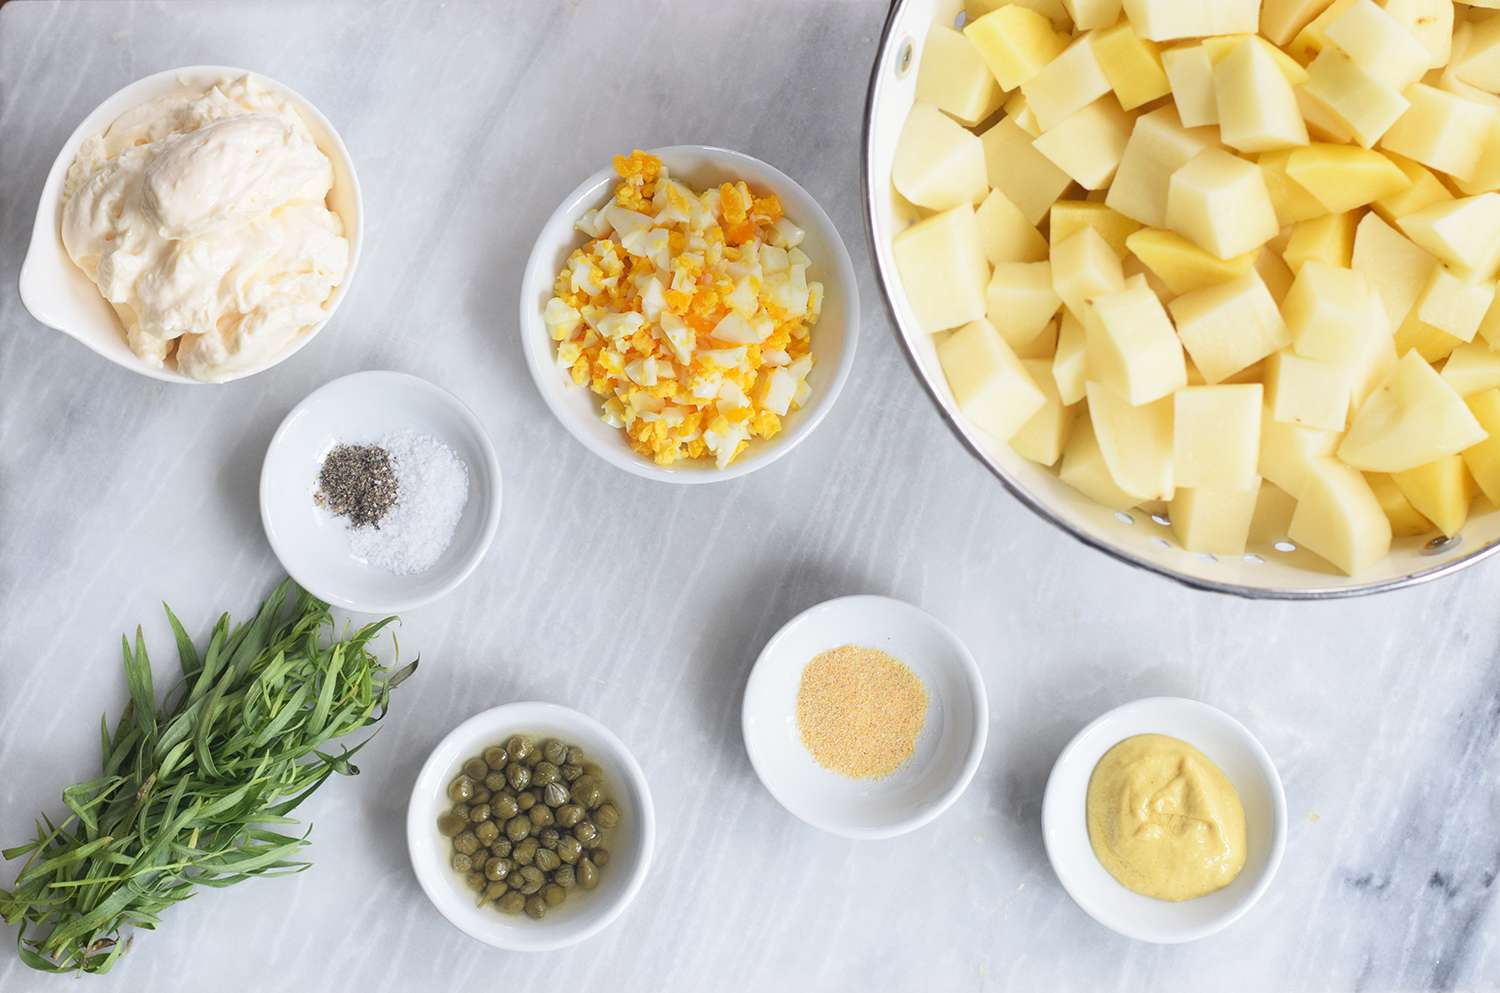 Ingredients for French Potato Salad